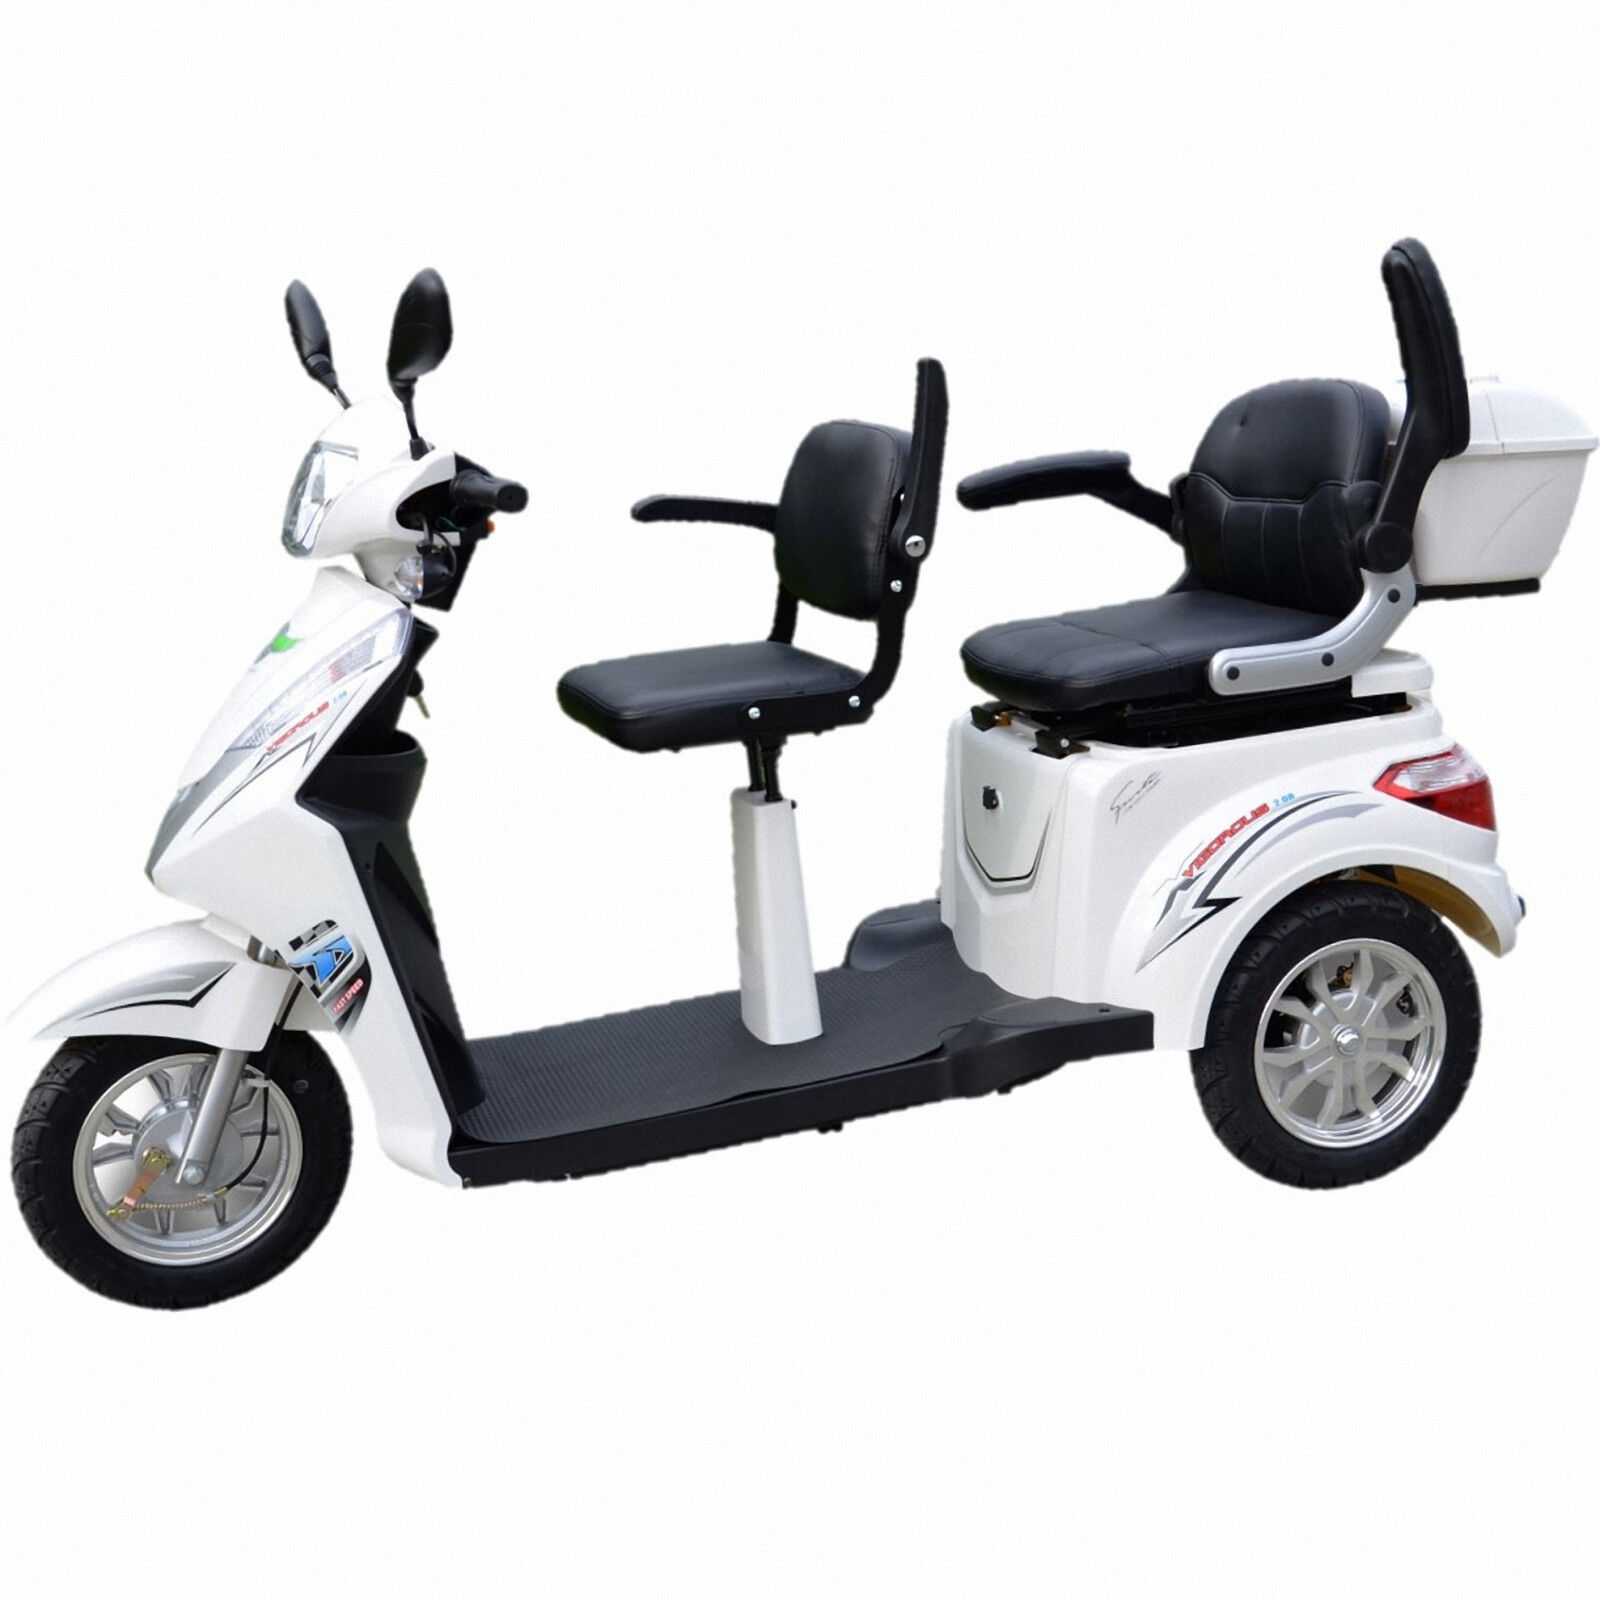 dreirad scooter seniorenmobil 2 pers eco engel 503 silber. Black Bedroom Furniture Sets. Home Design Ideas